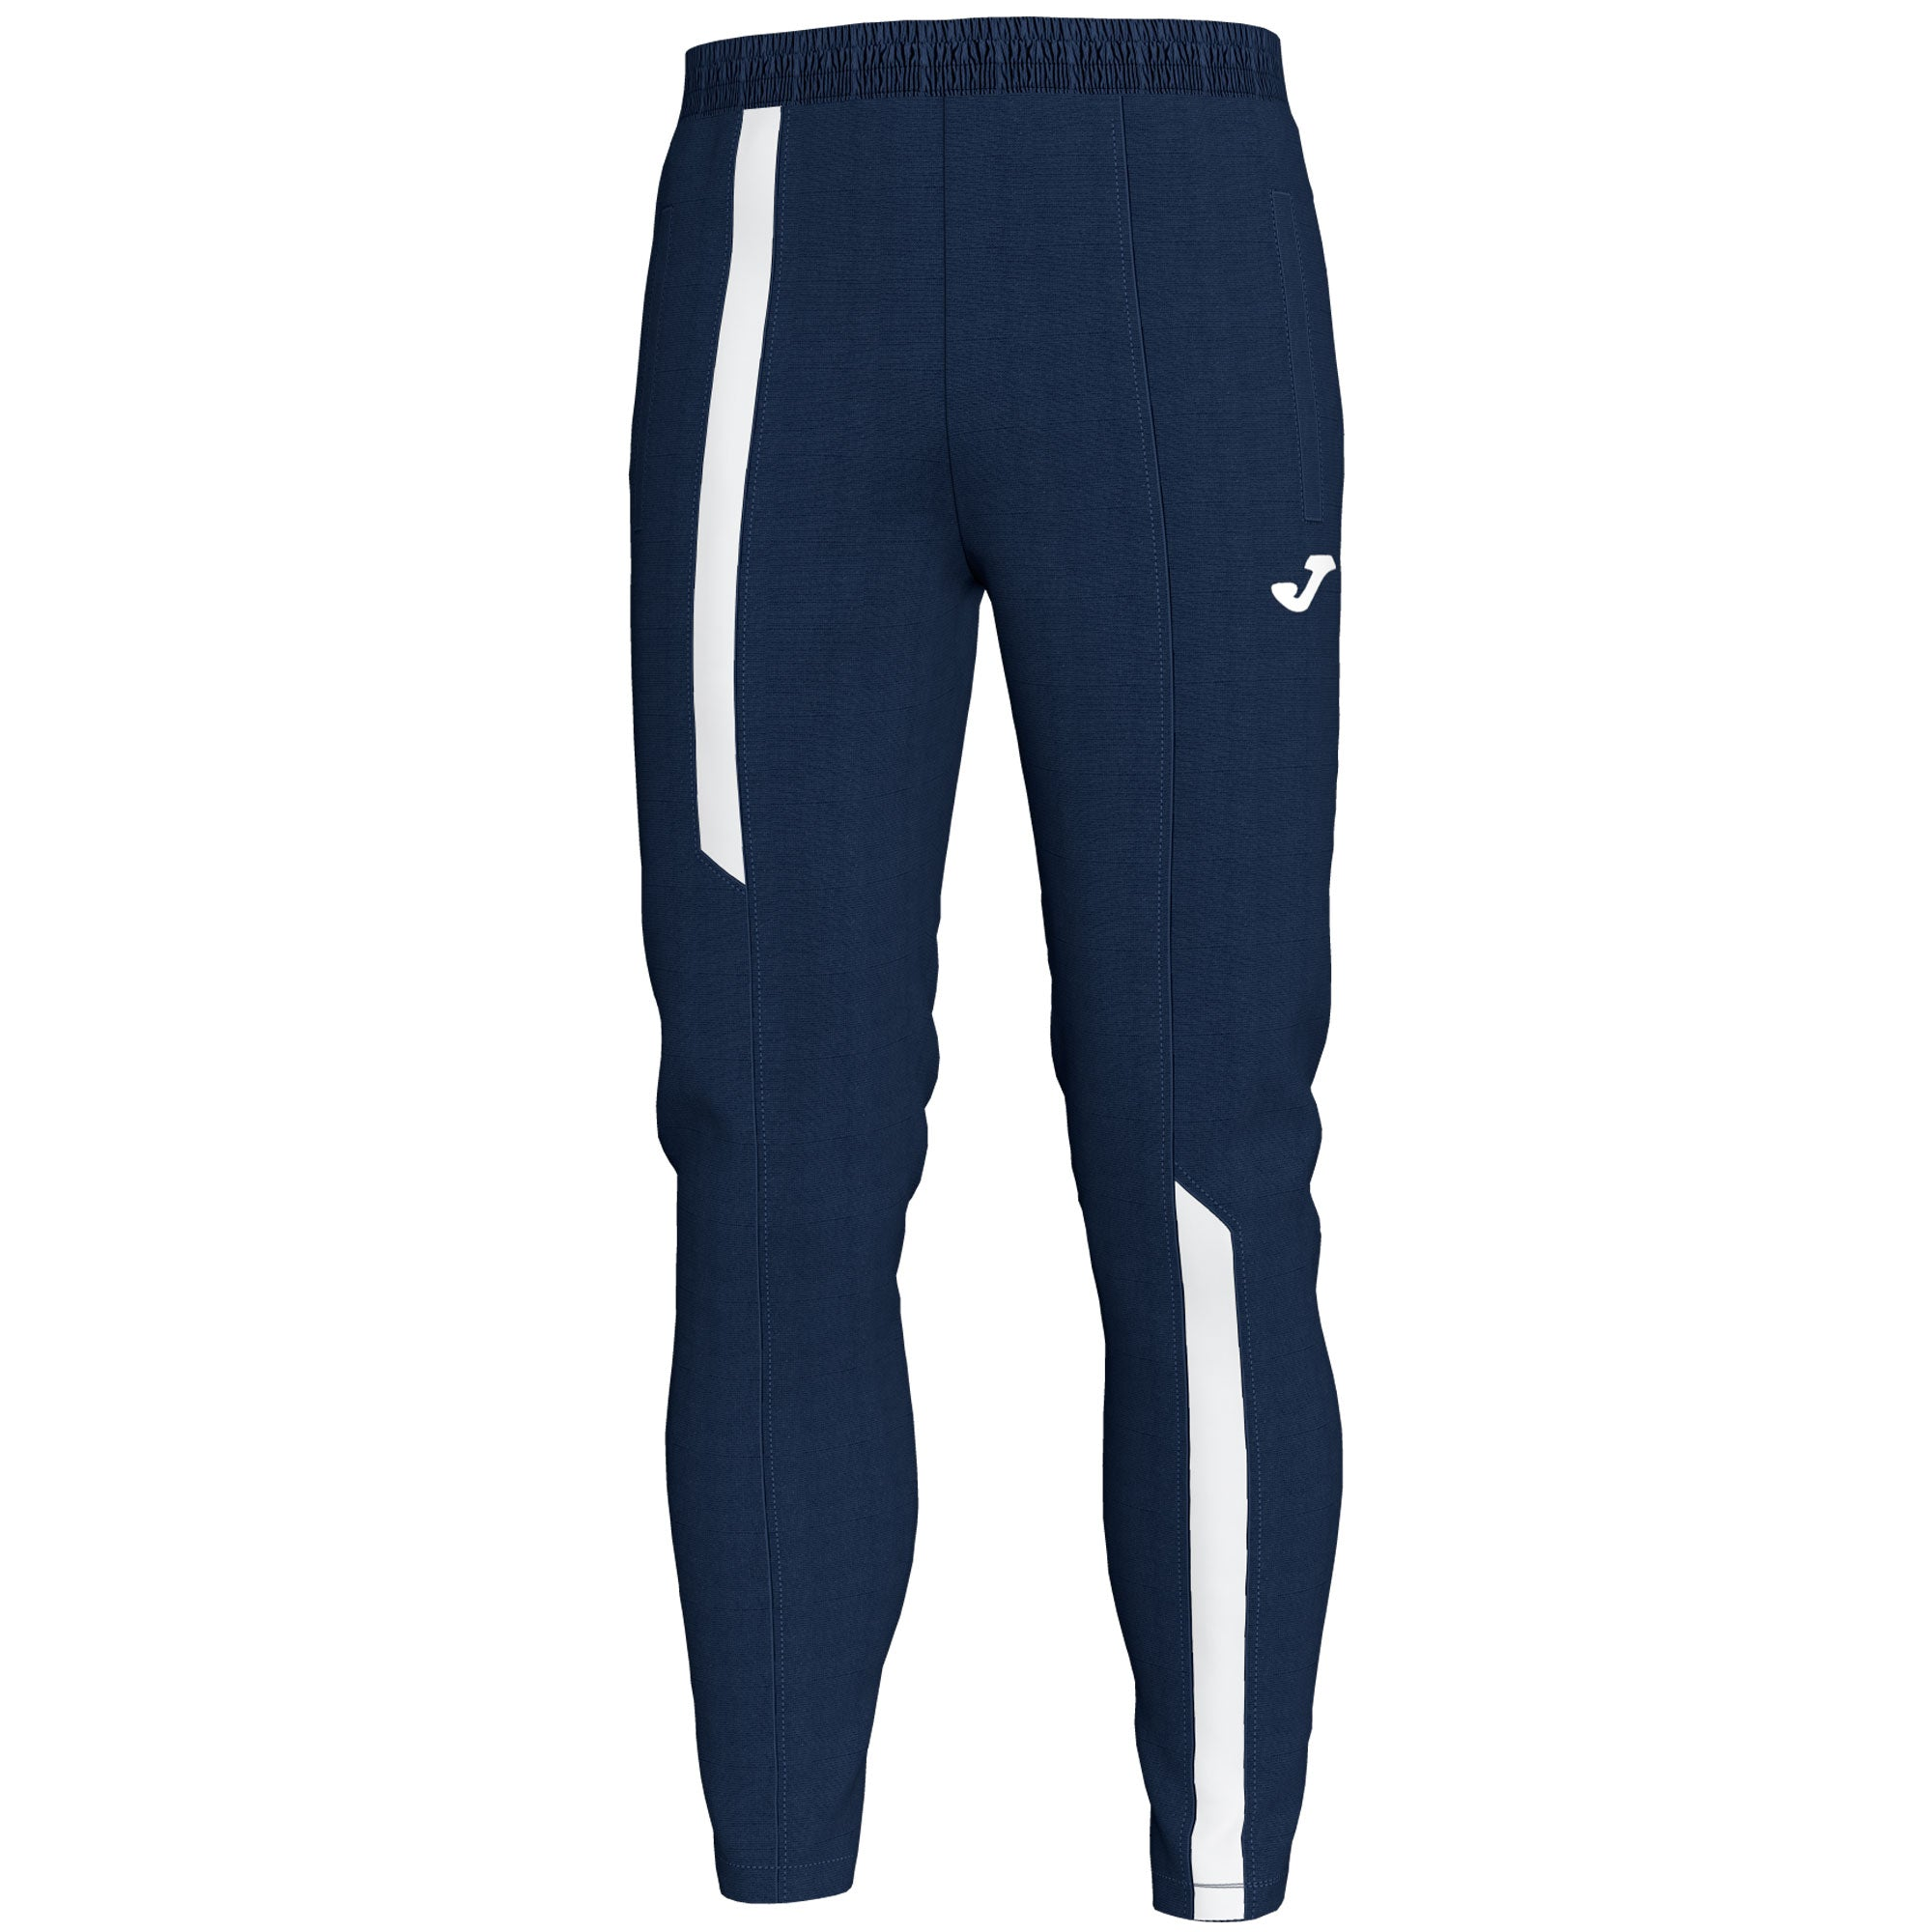 Haverigg United training bottoms